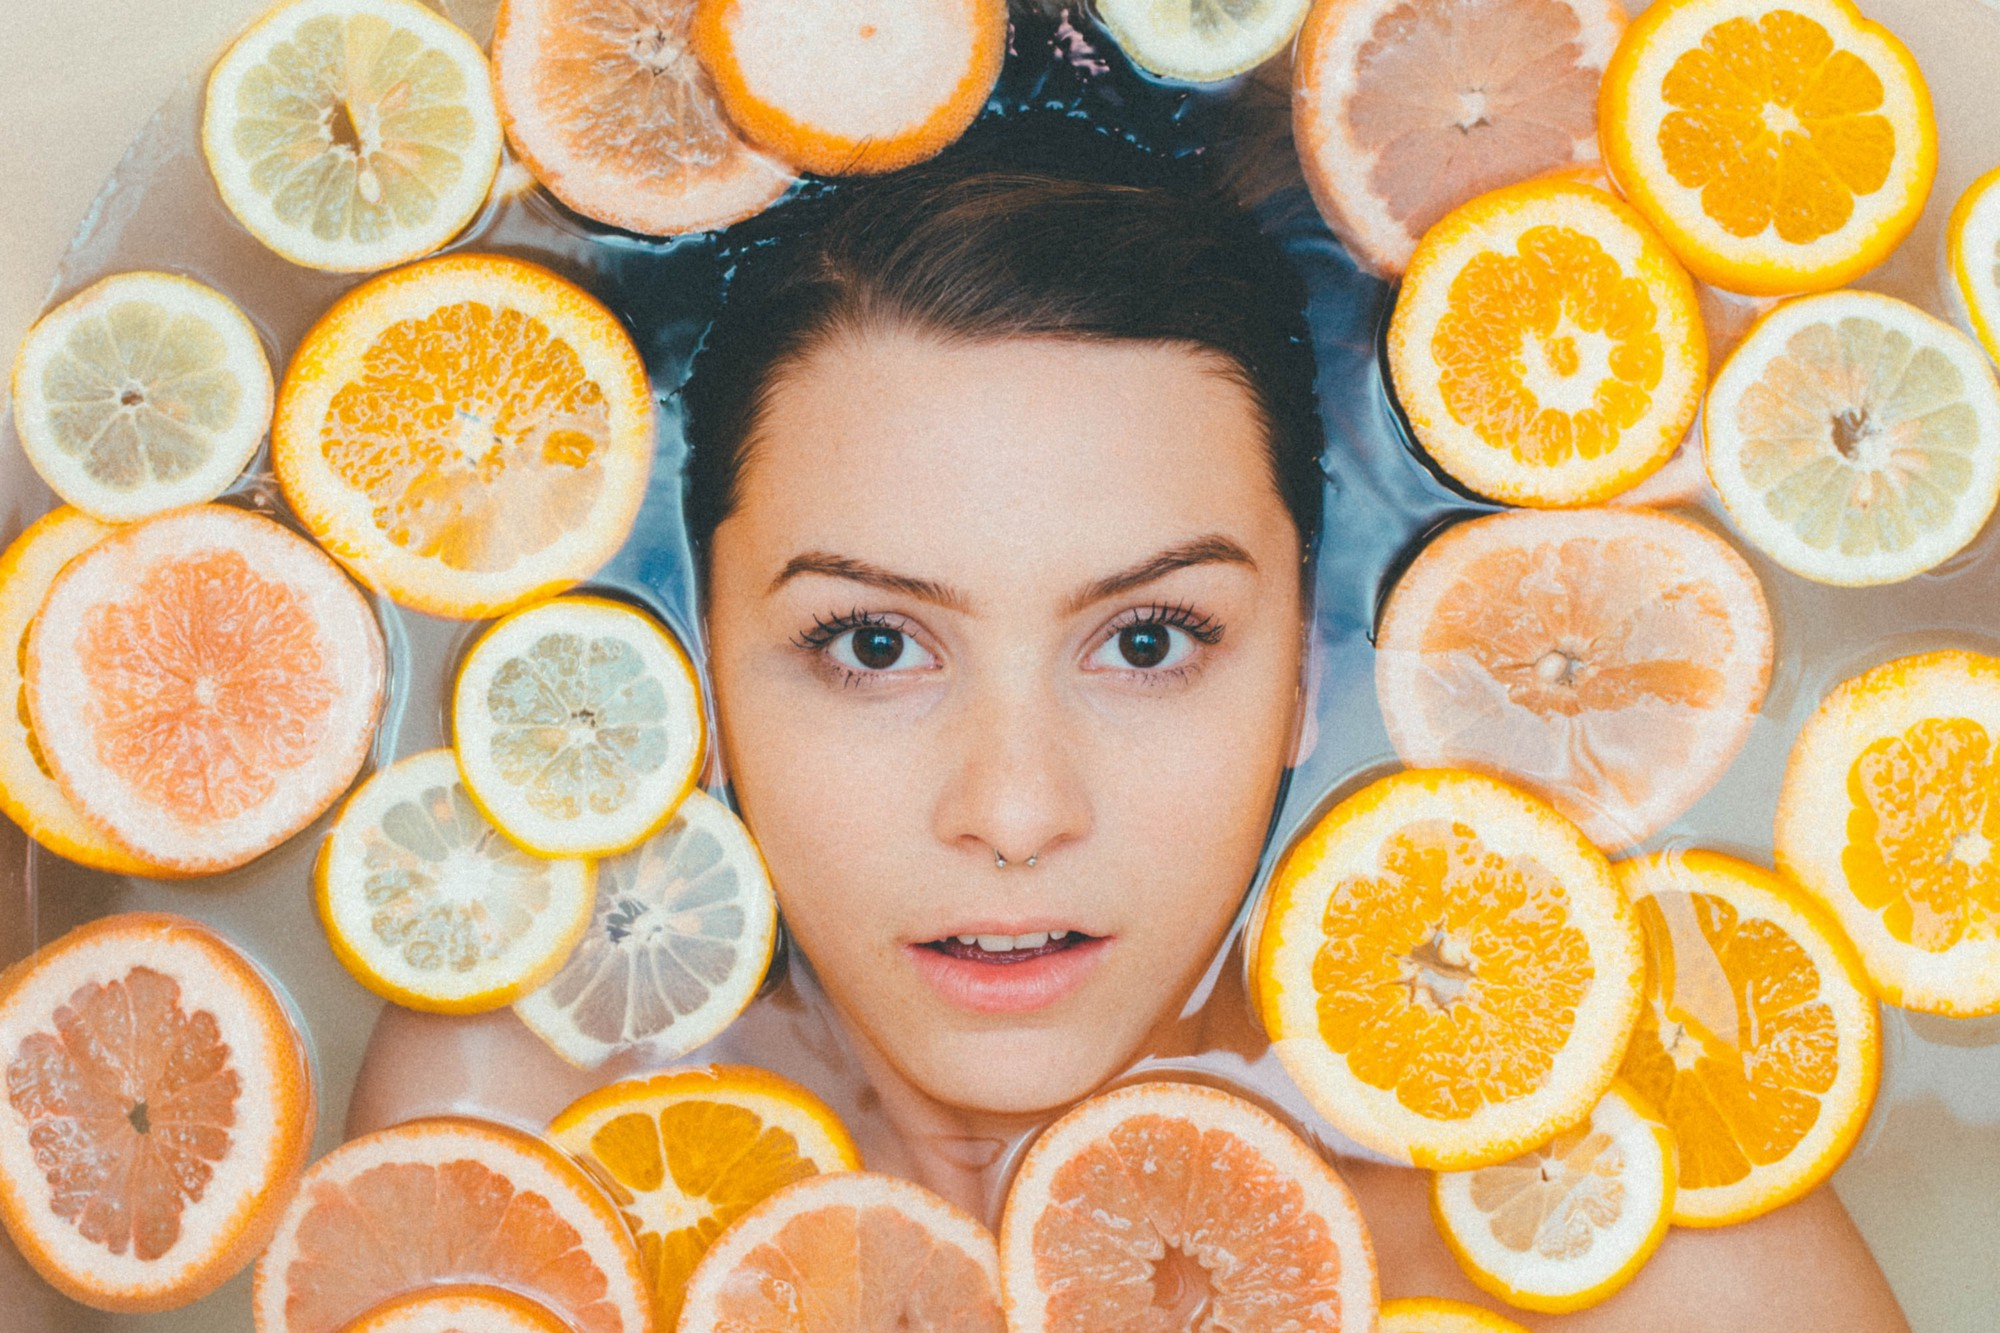 A woman's face in water surrounded by orange slices